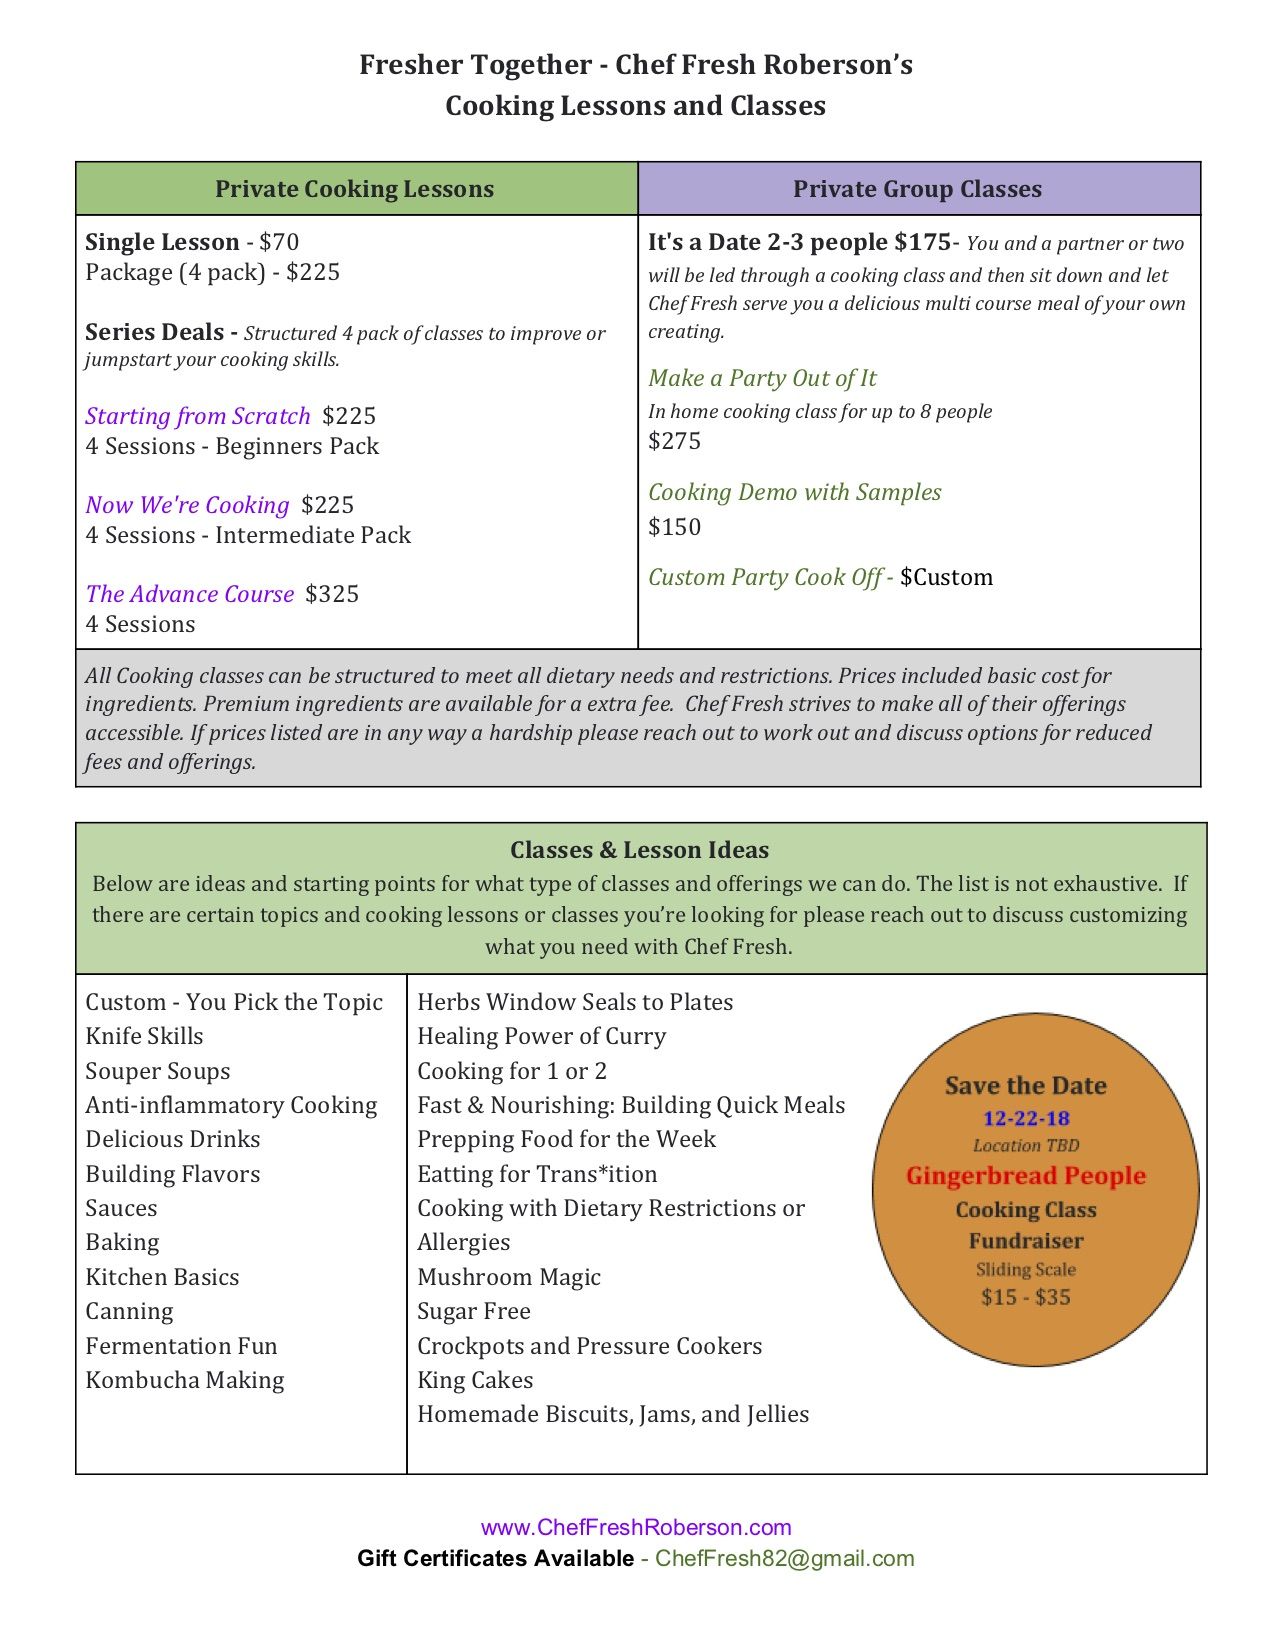 Fresher Together Cooking Class Price List.jpg